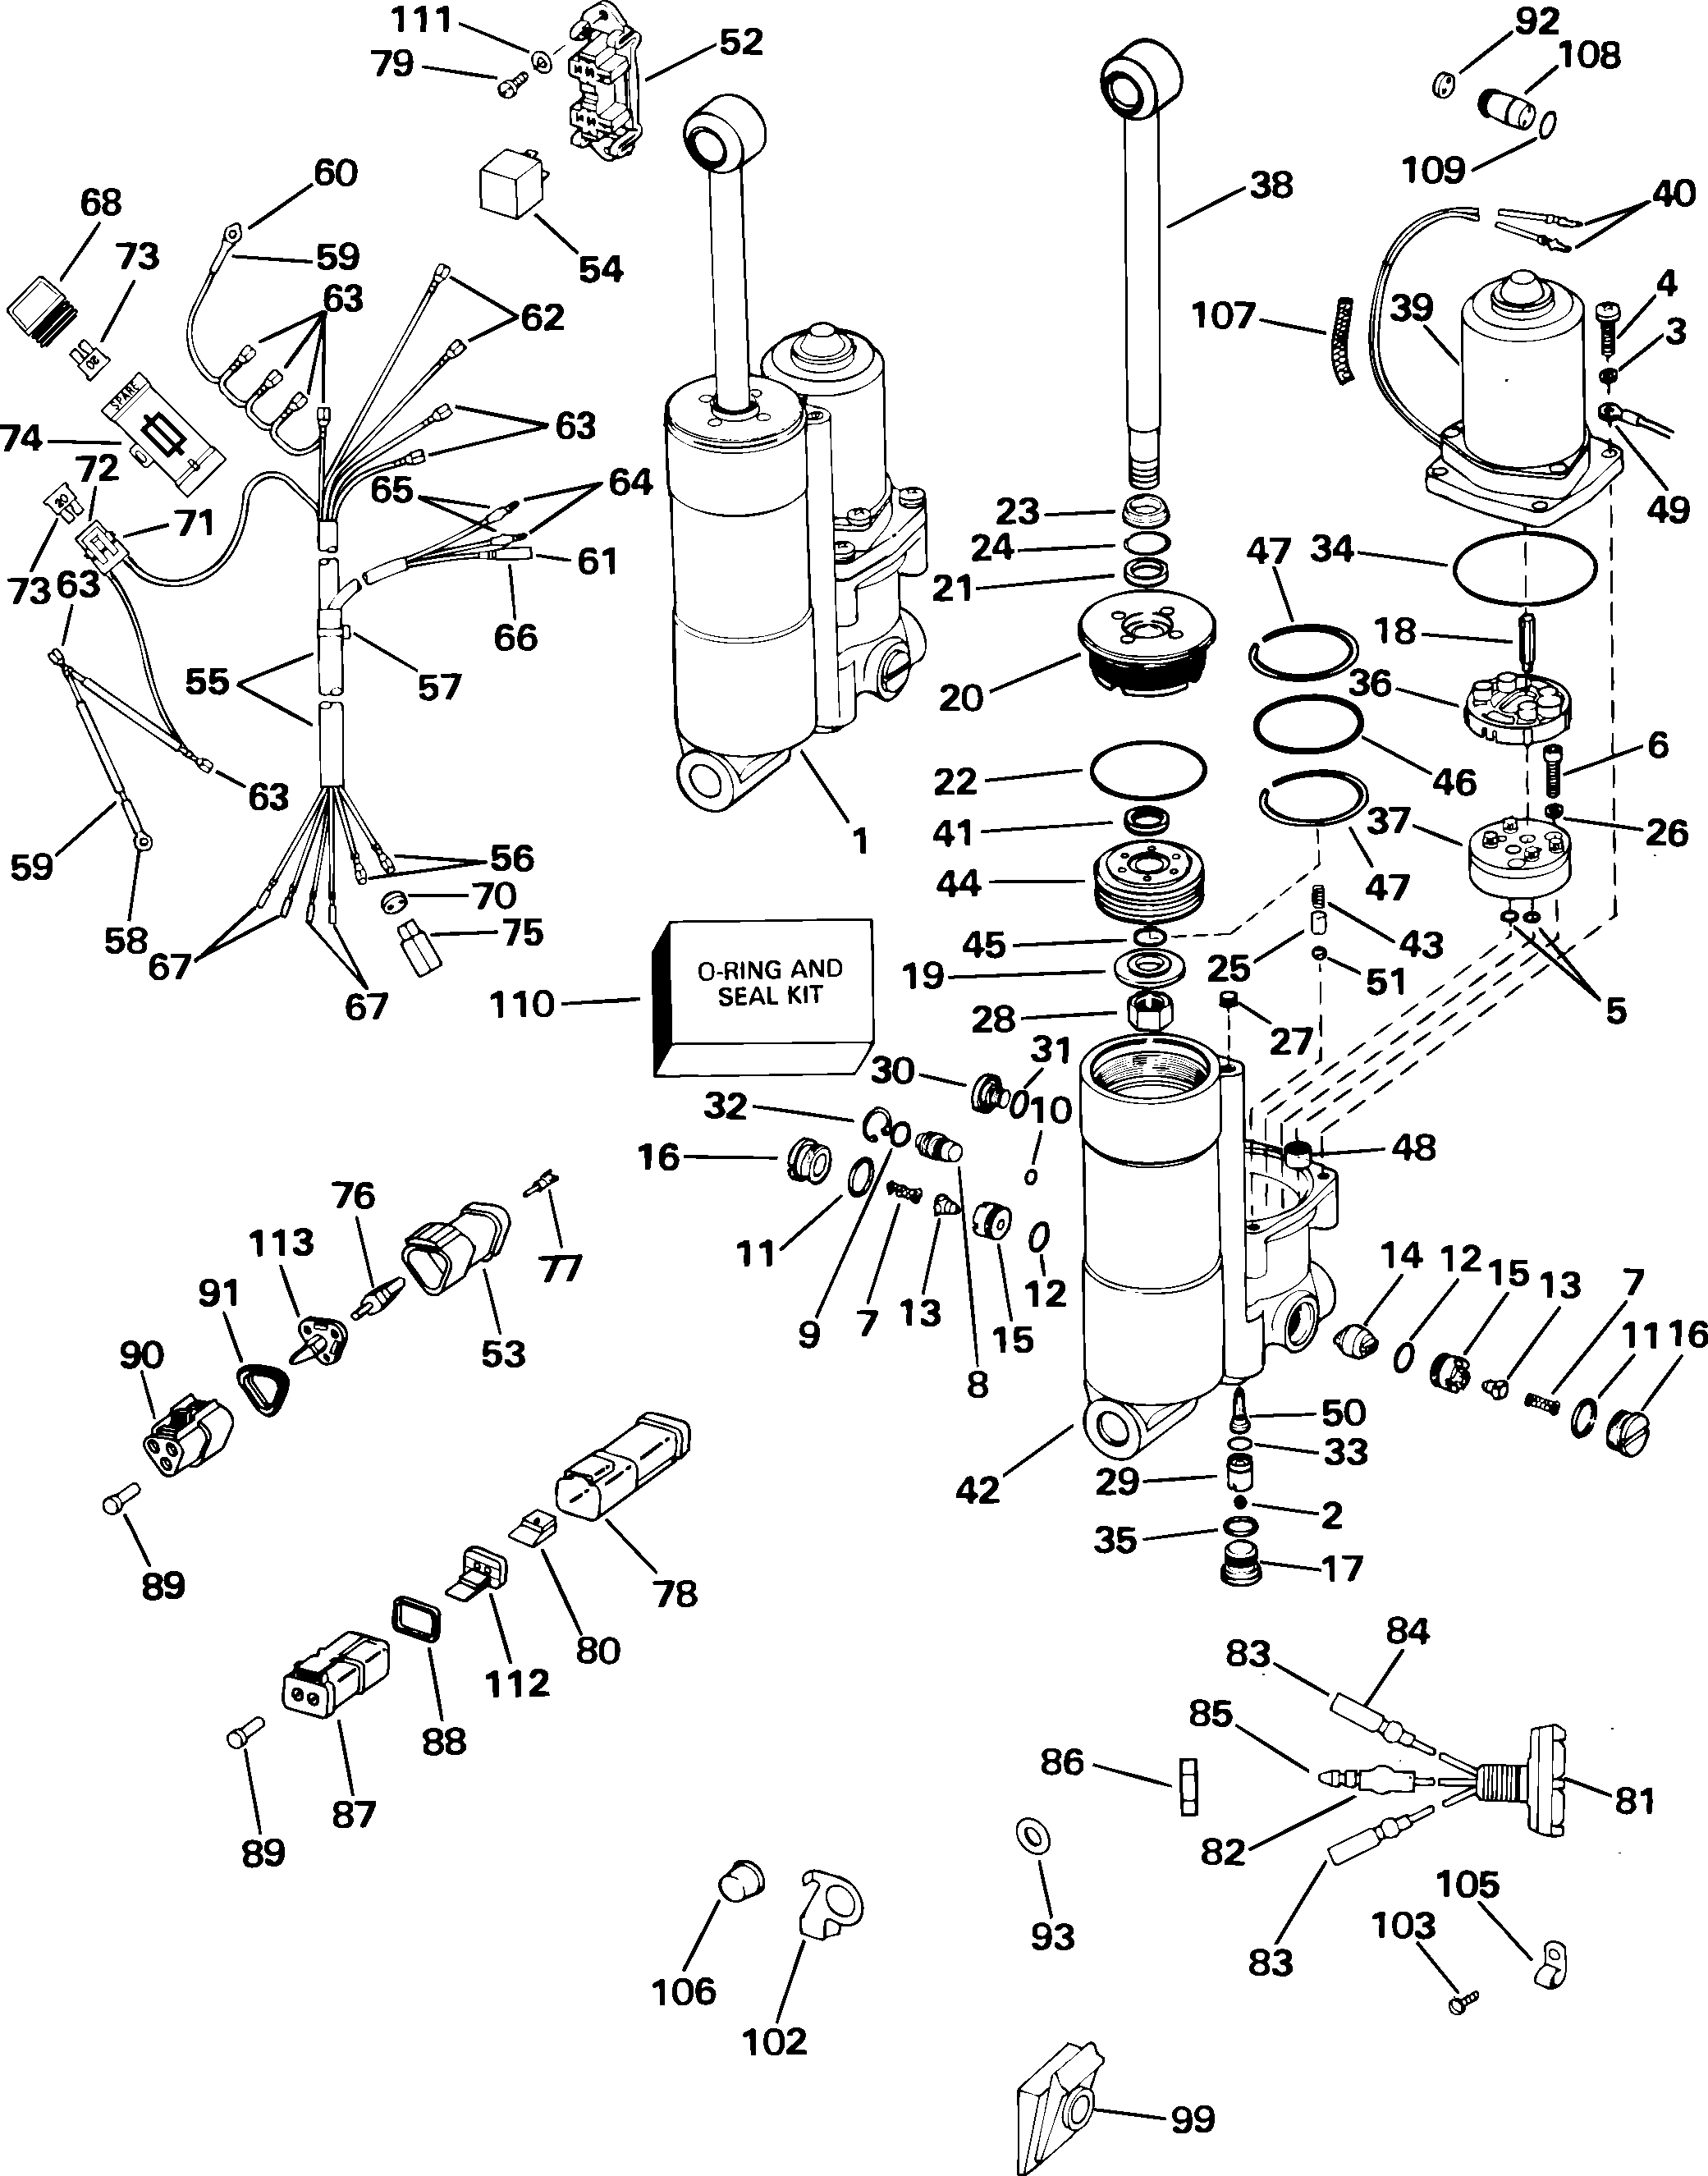 Go 8556 Outboard Wiring Harness Diagram On Evinrude Outboard Ignition Wiring Schematic Wiring